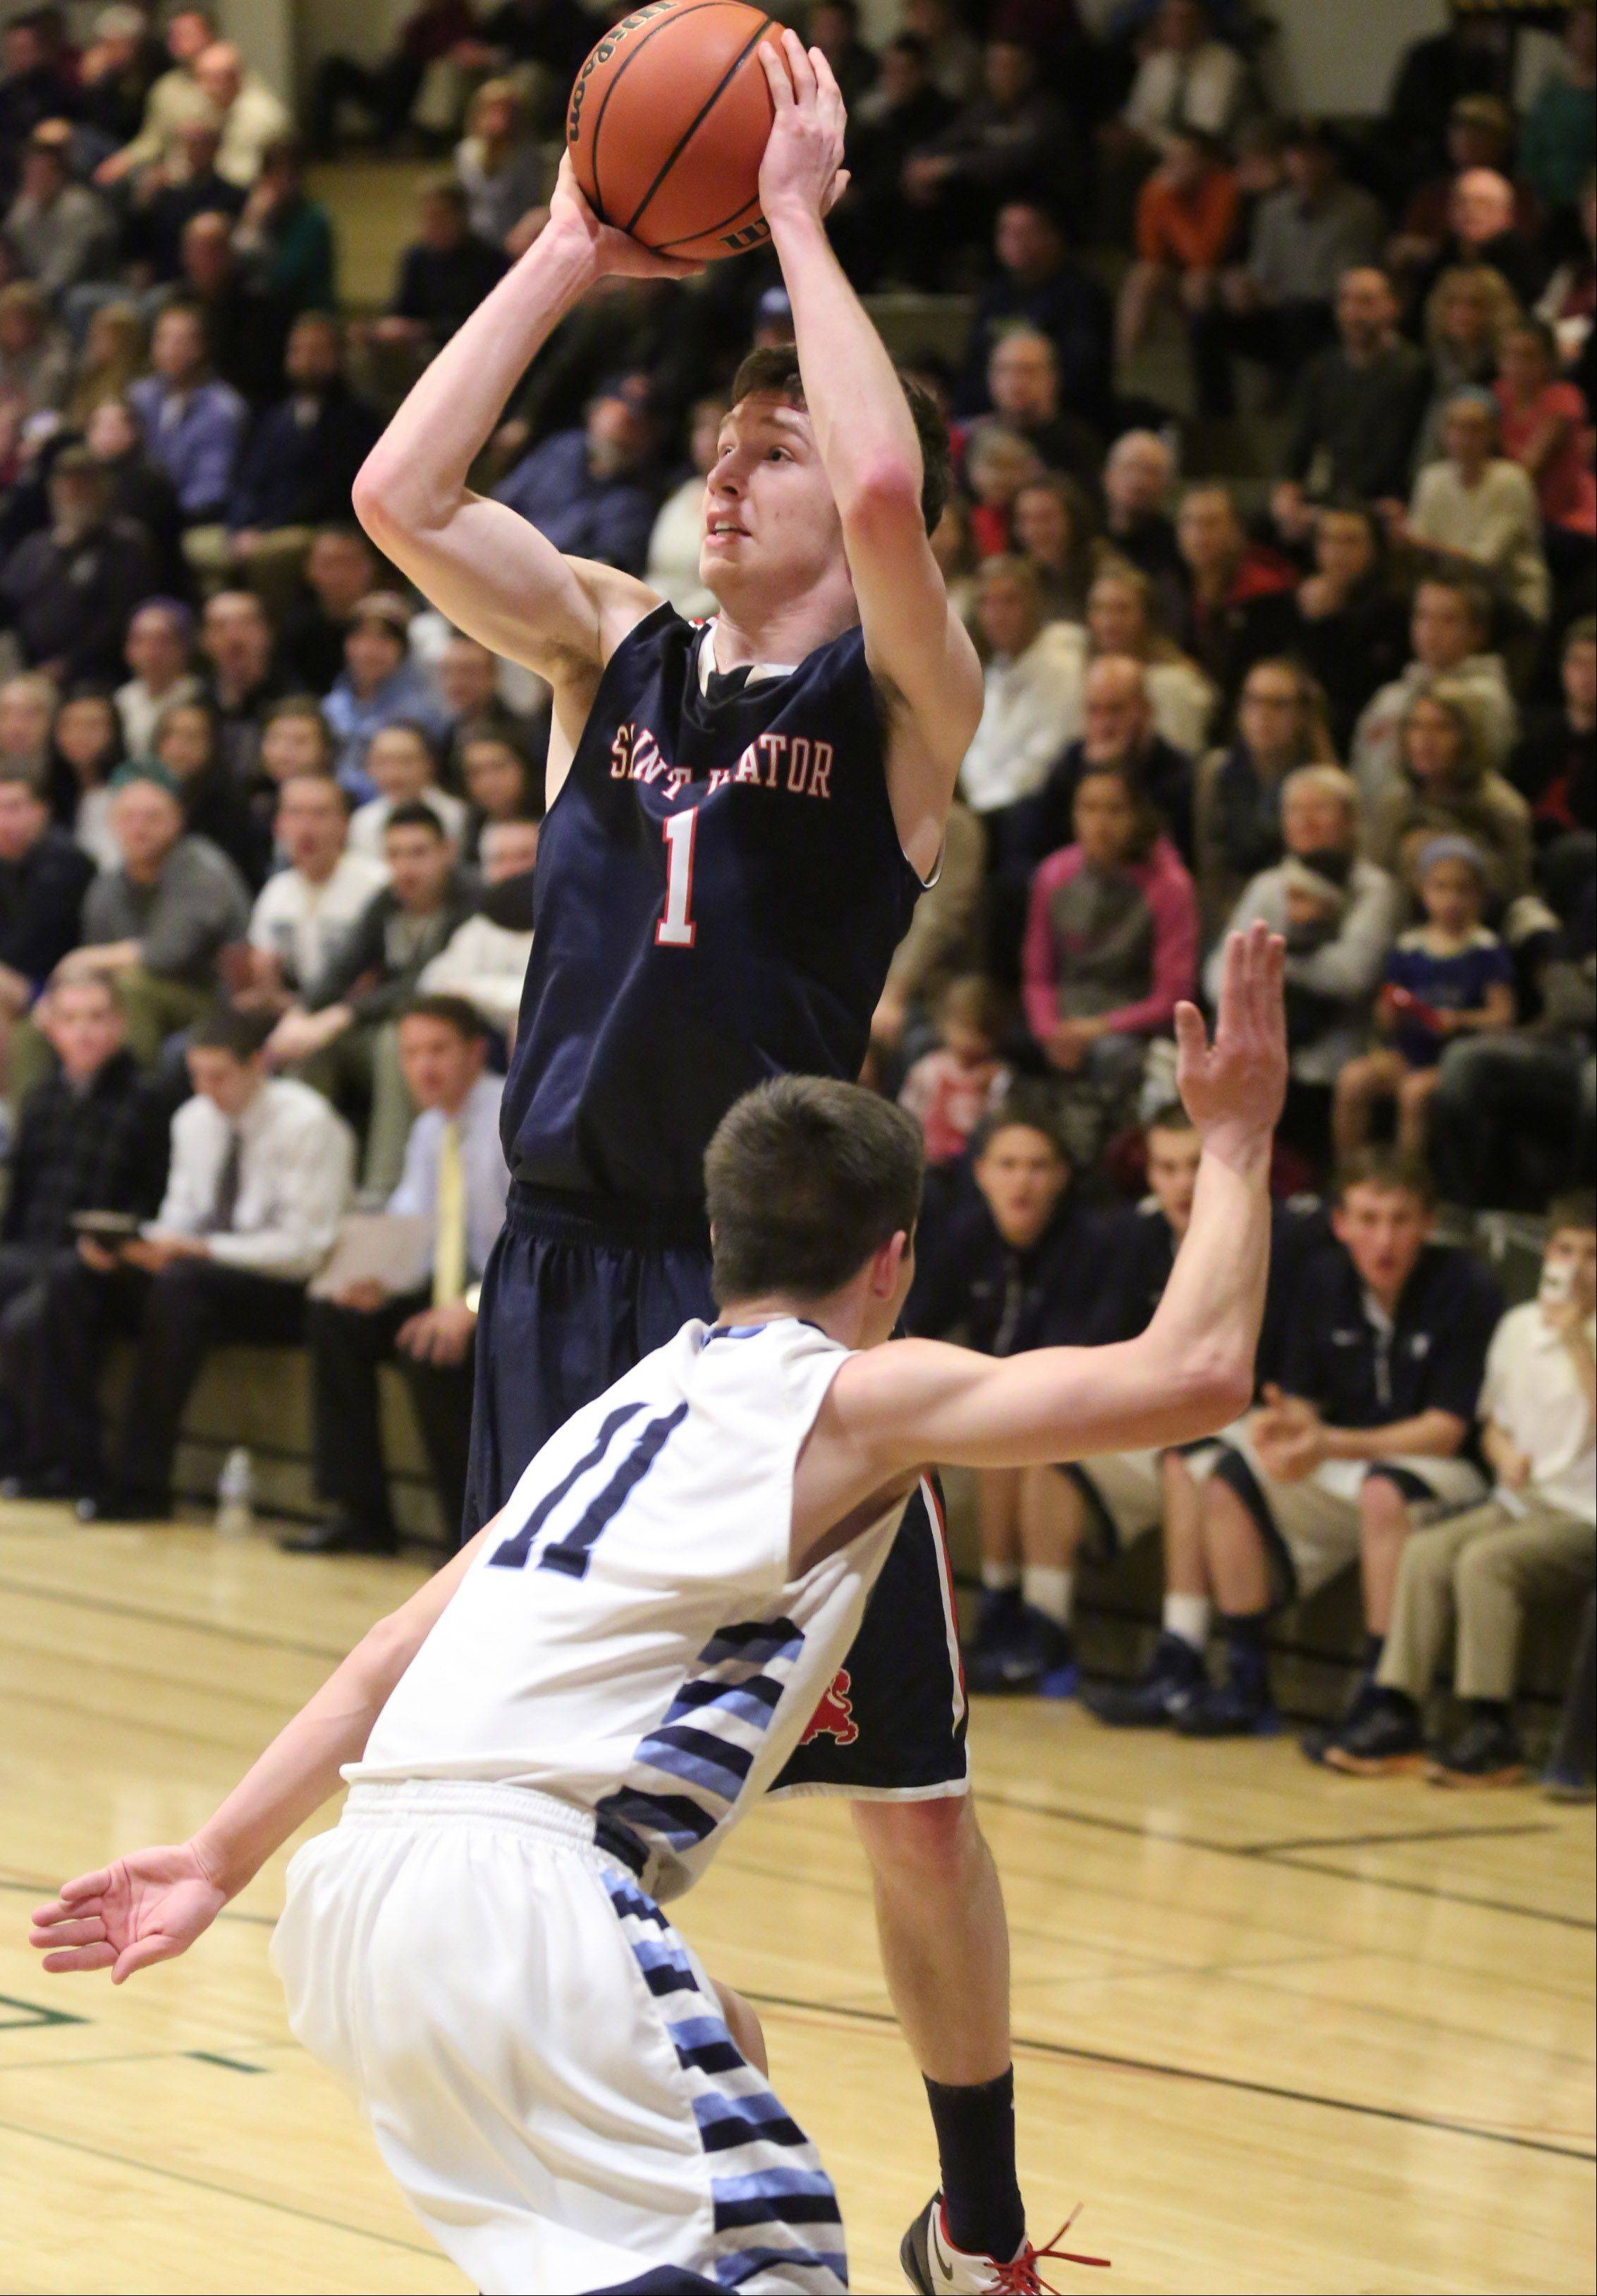 Images from the St. Viator vs. Prospect boys basketball game on Friday, Dec. 27 in Wheeling.